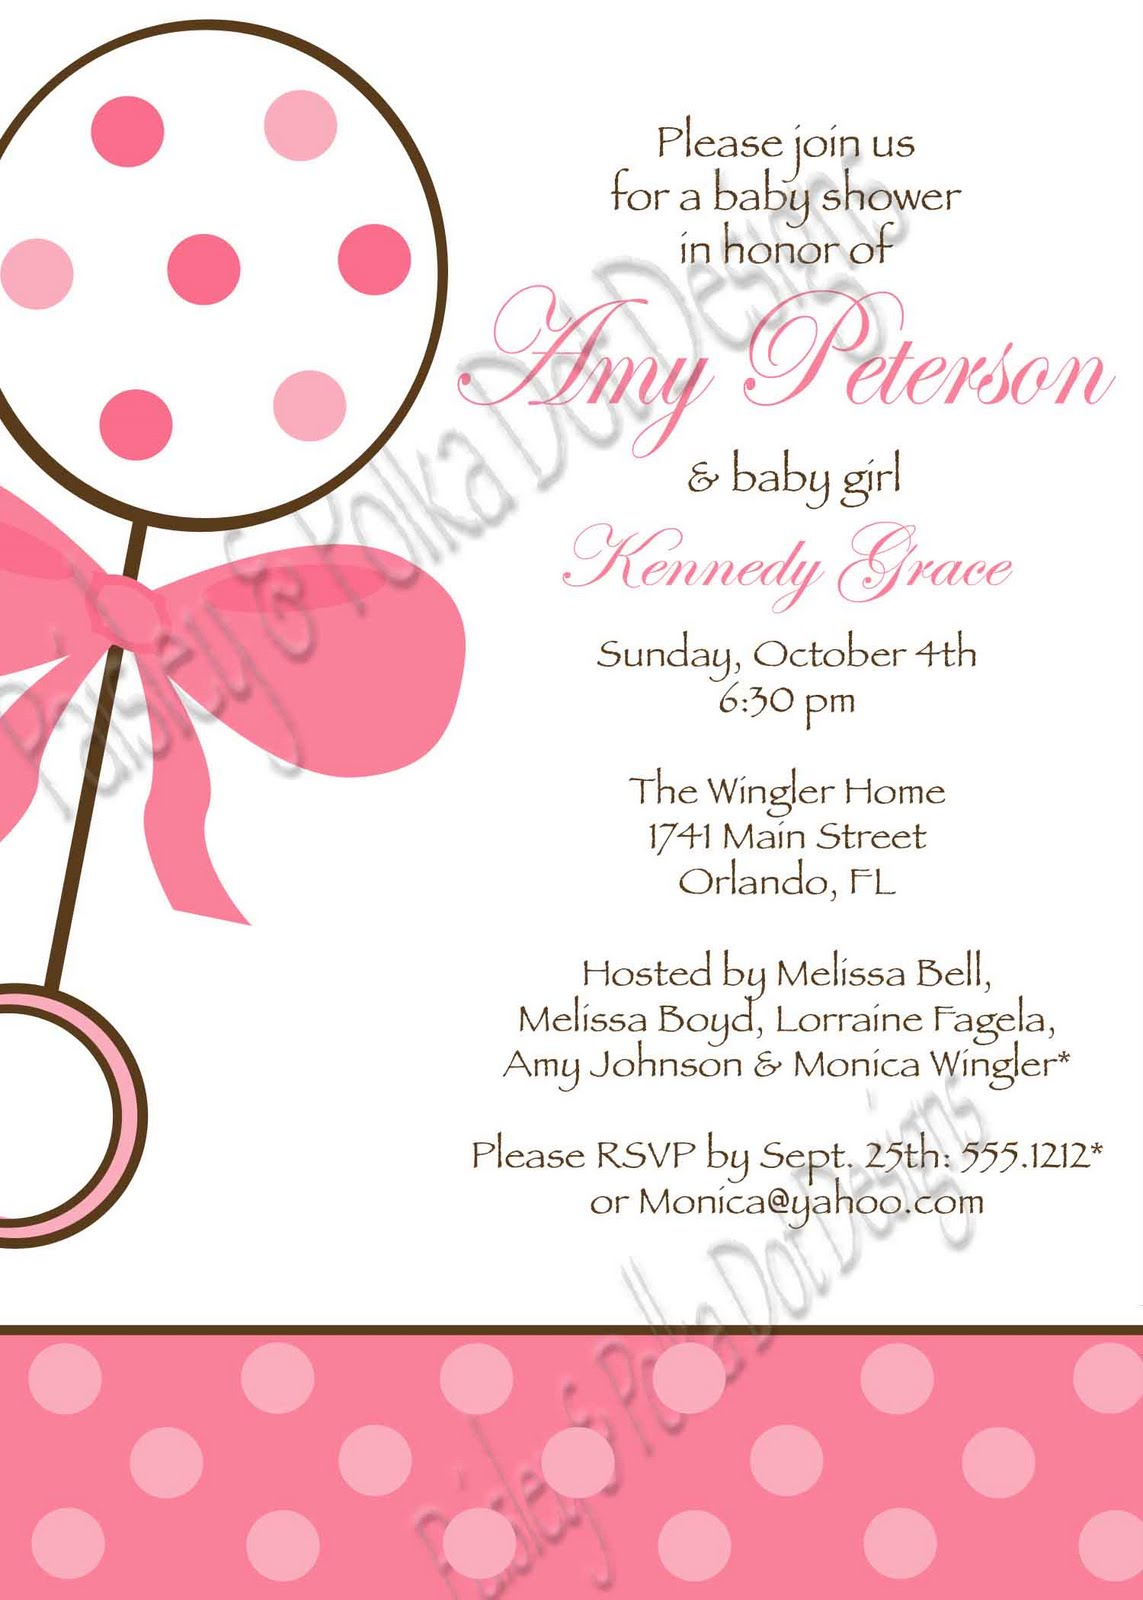 Paisley and Polka Dot Designs: Baby Shower Invitations